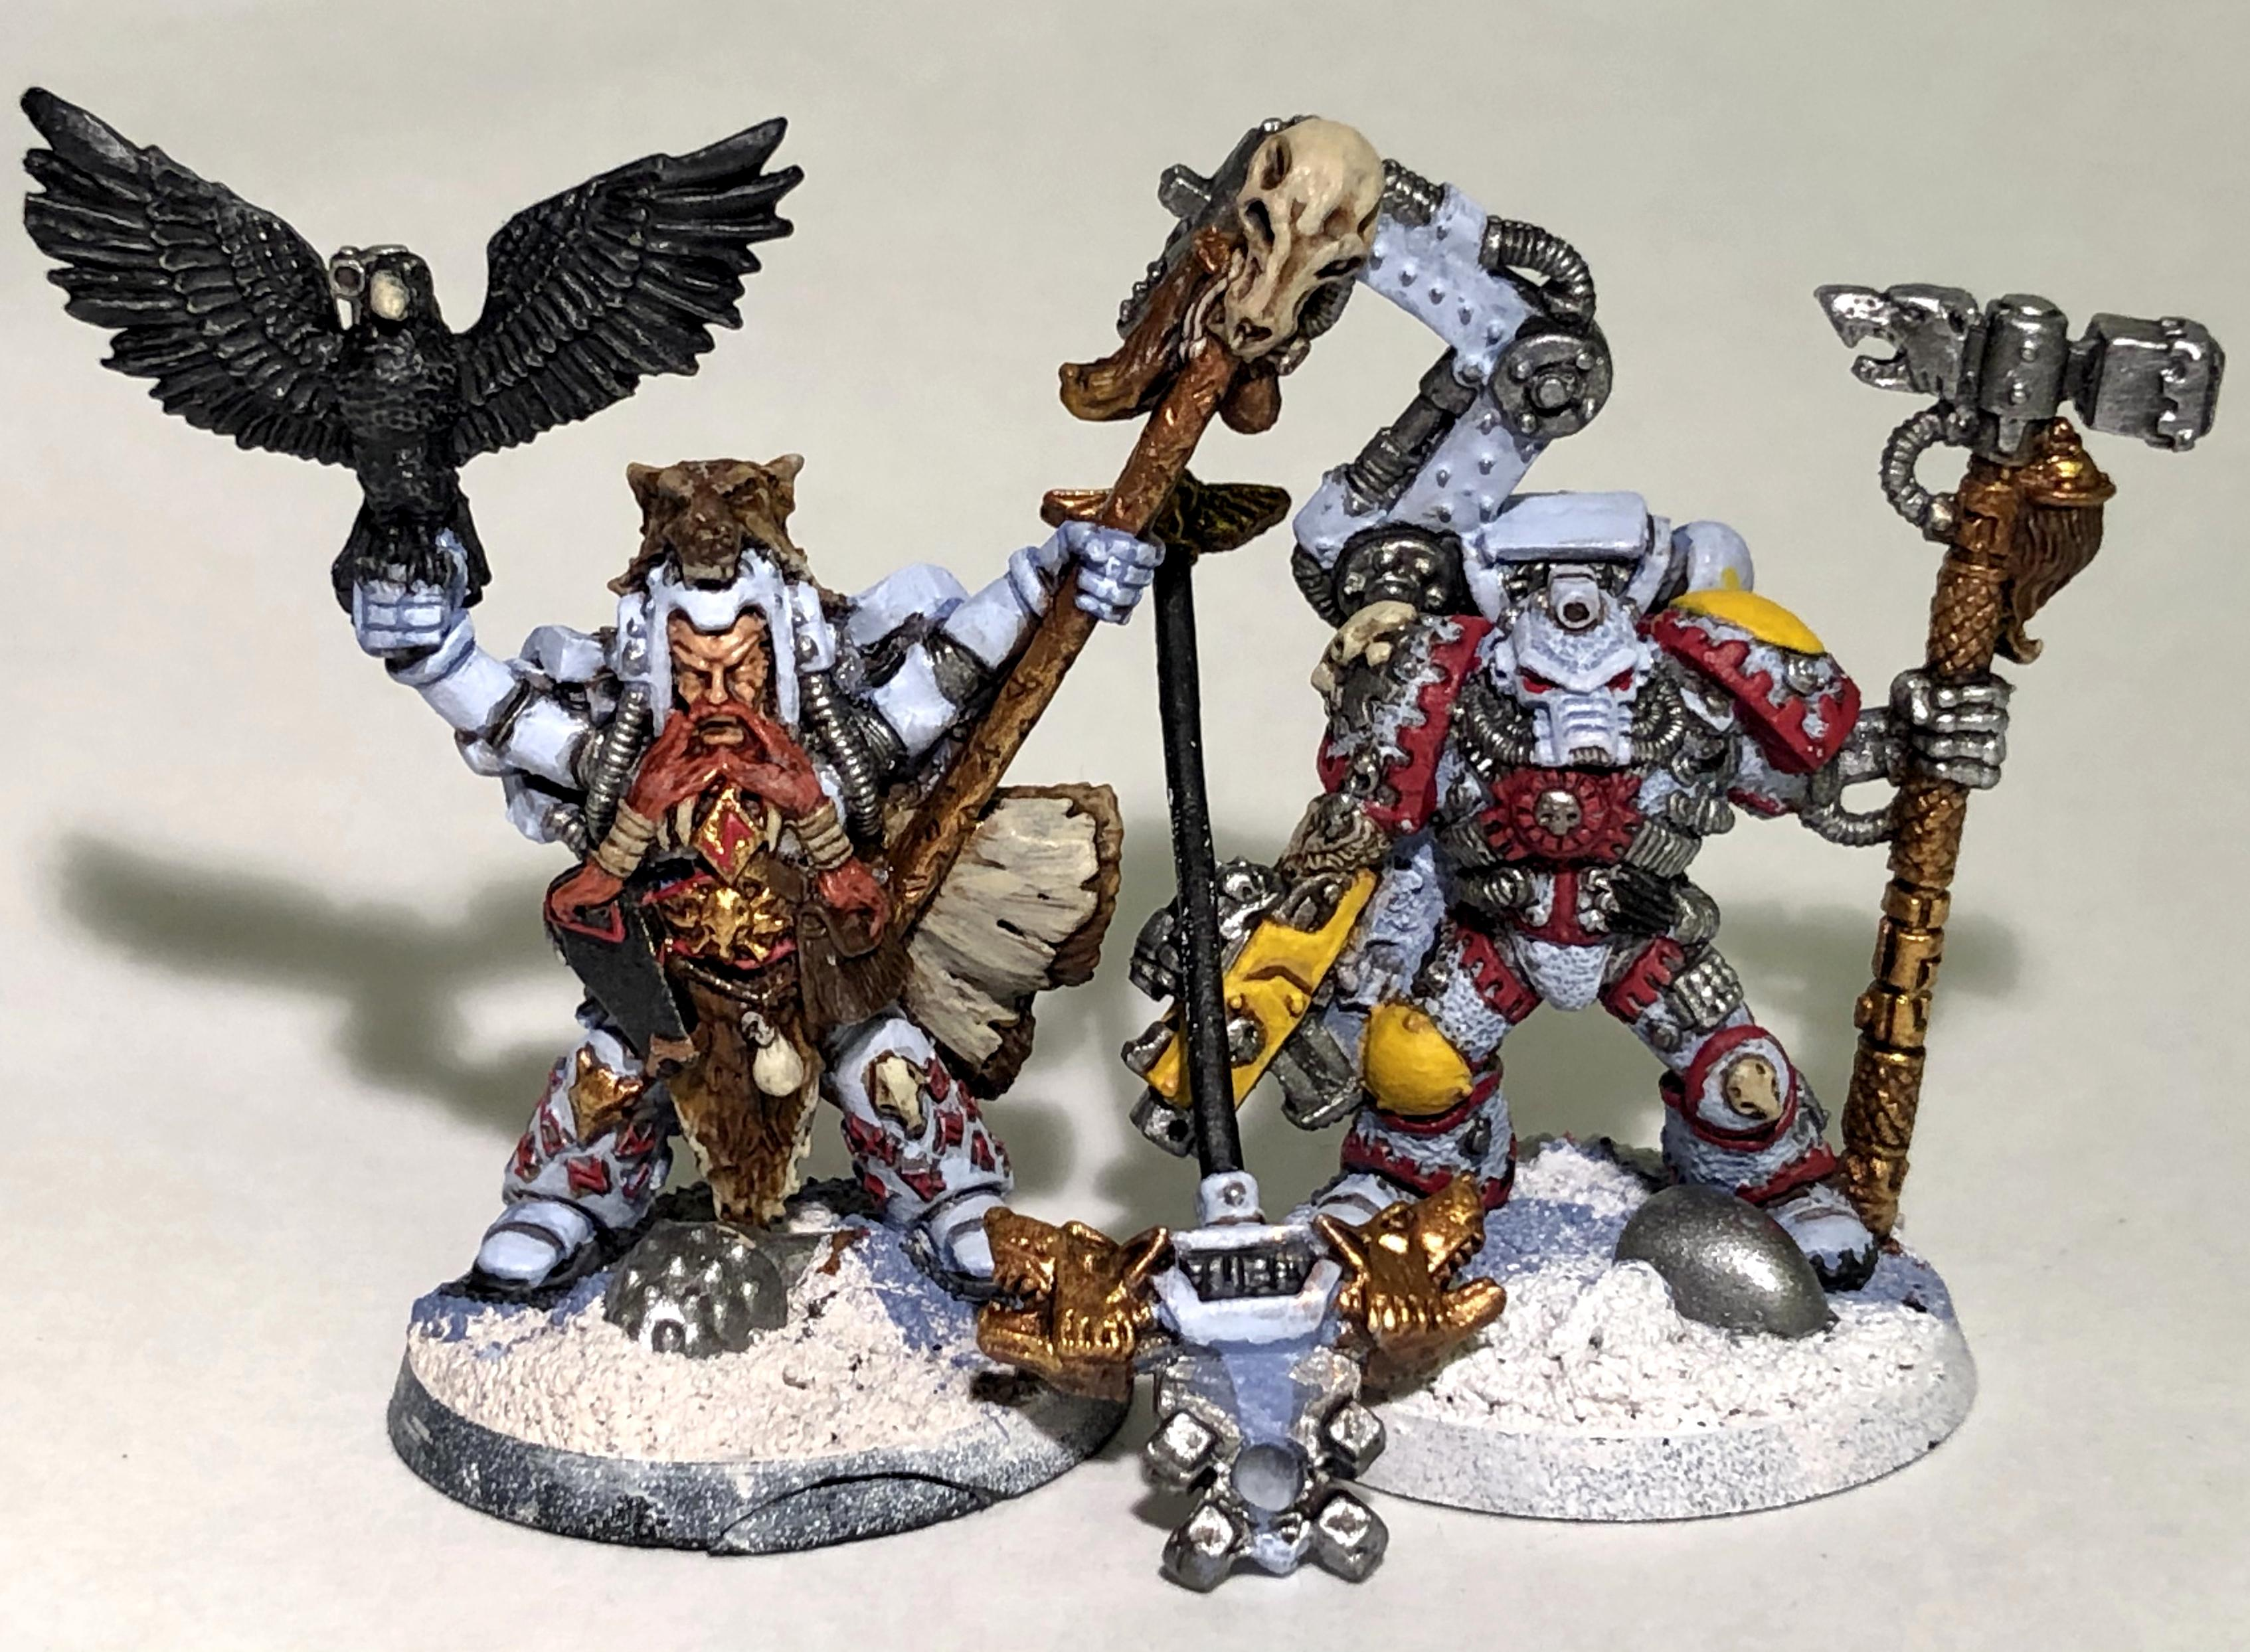 2nd Edition, Iron Priest, Njal Stormcaller, Space Marines, Space Wolves, Warhammer 40,000